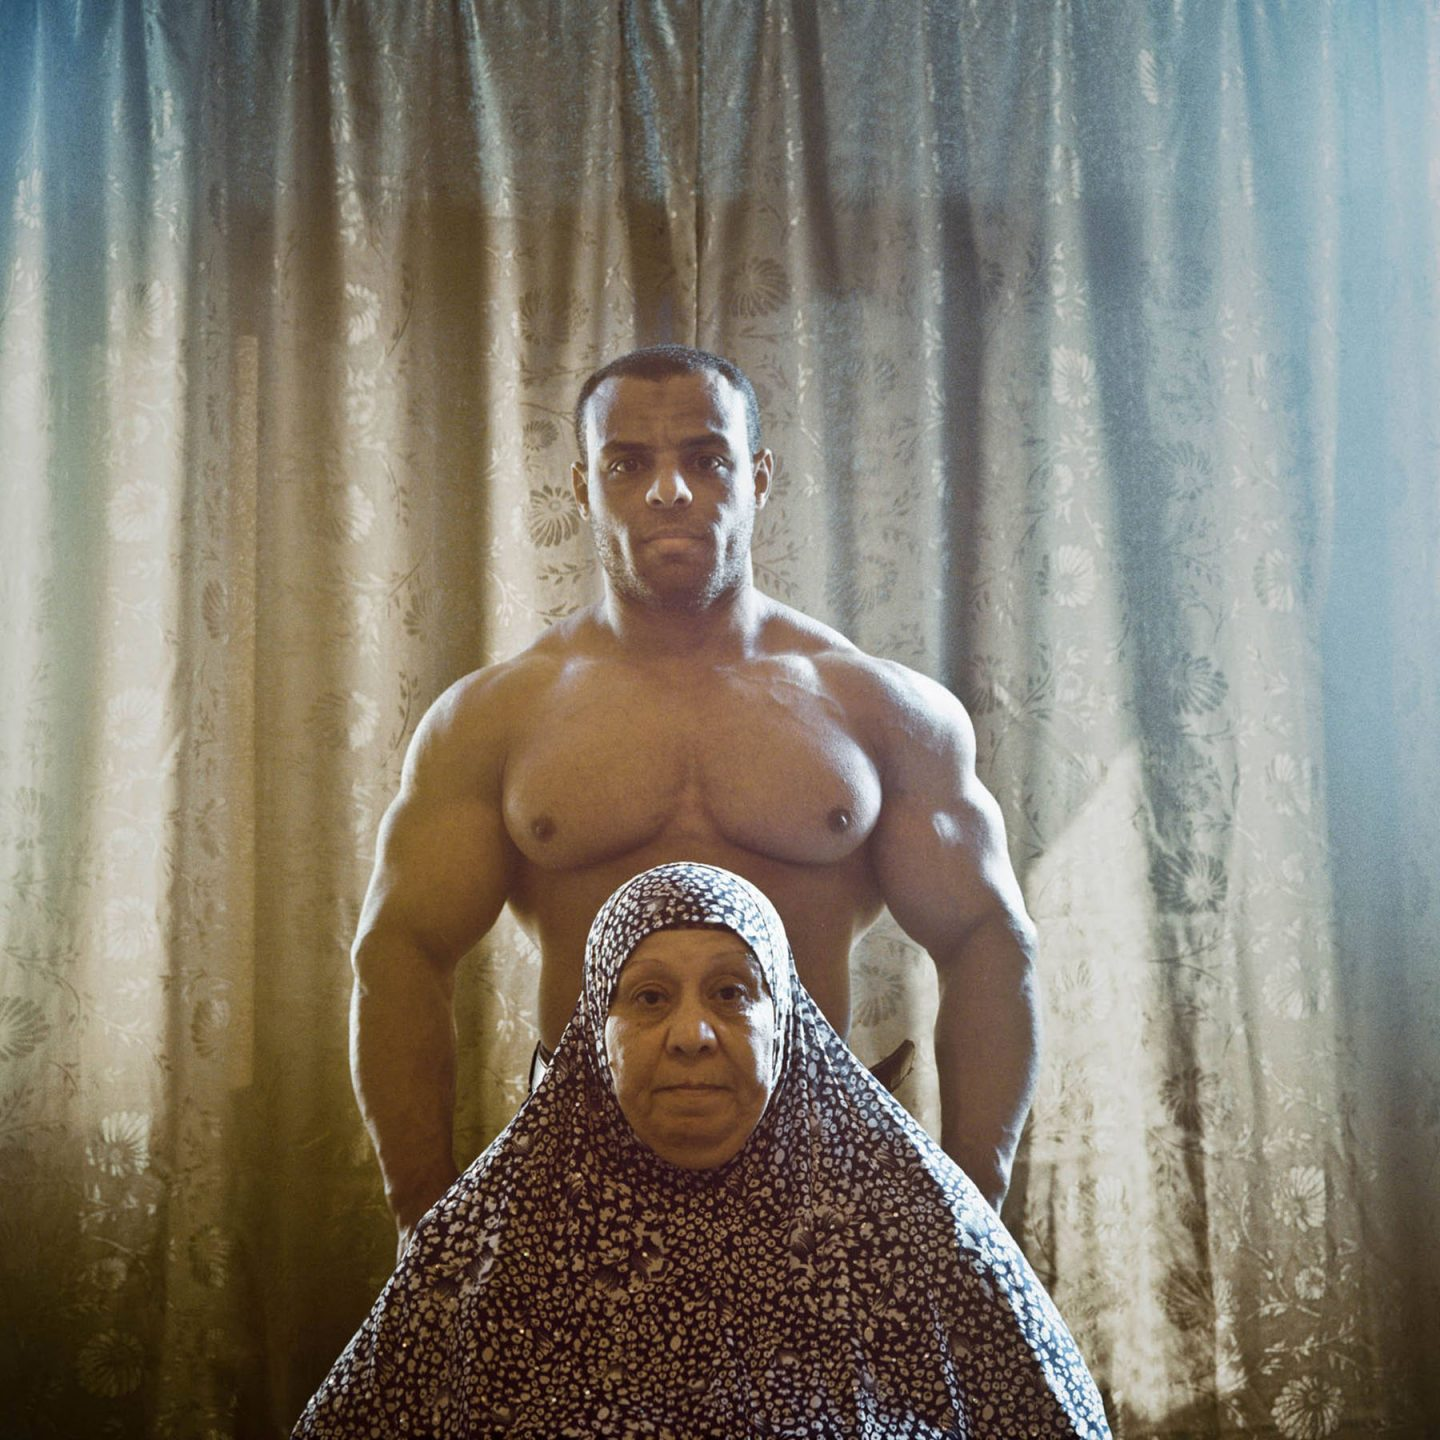 iGNANT-Photography-Denis-Dailleux-Egypt-Mother-And-Son-17